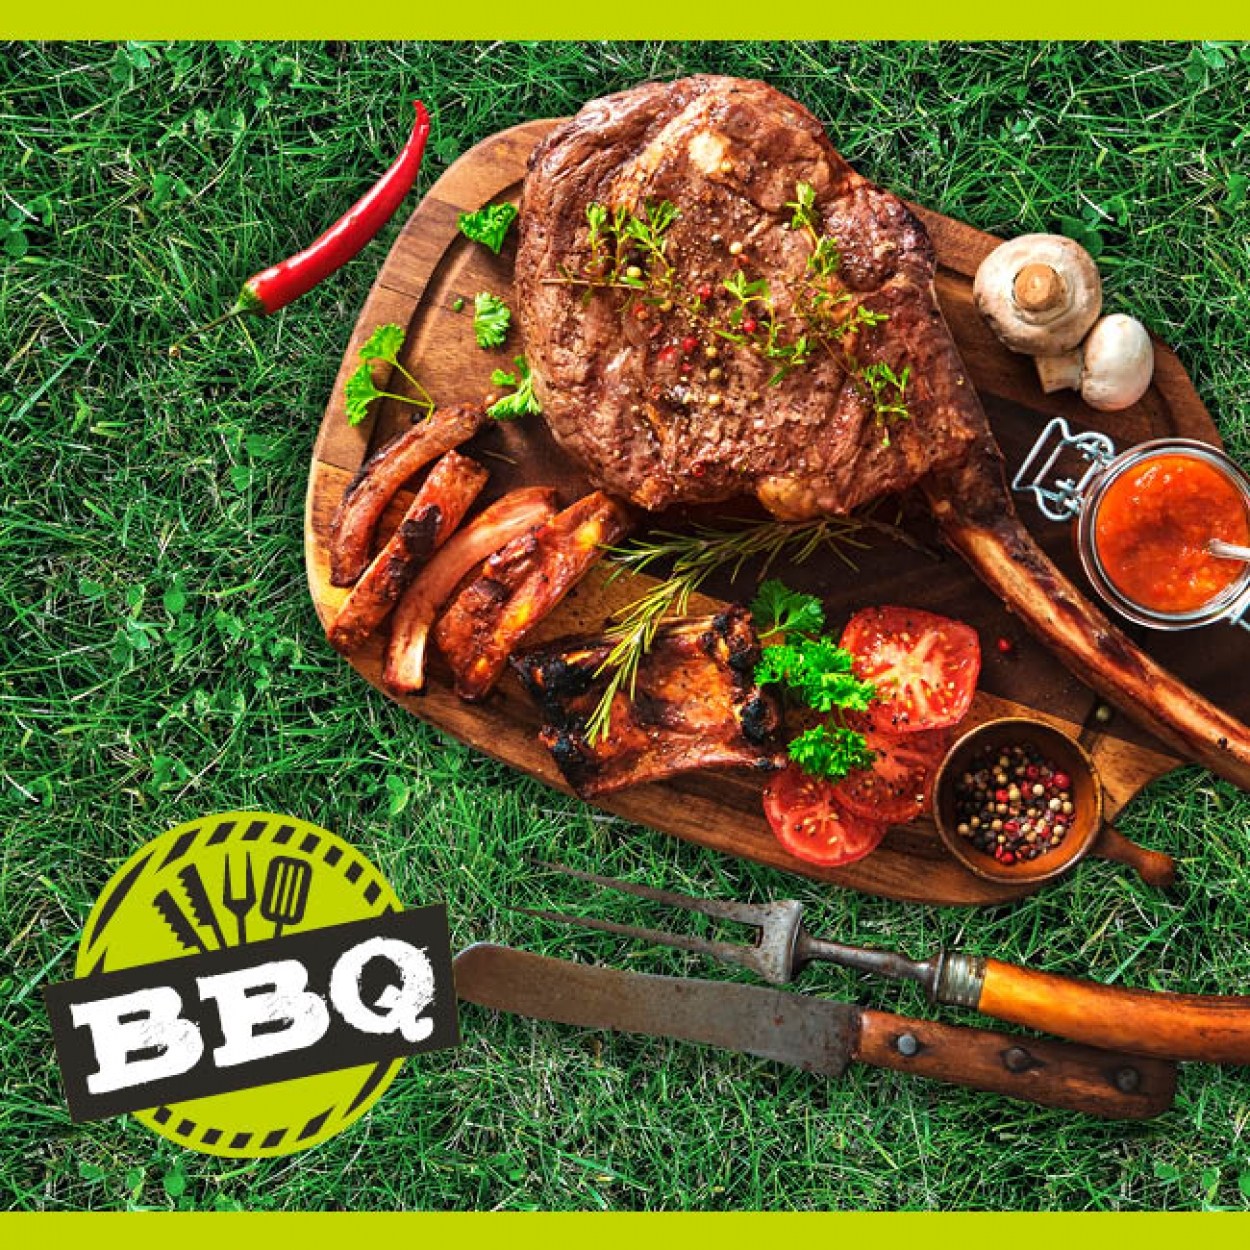 Campagne BBQ Carrefour